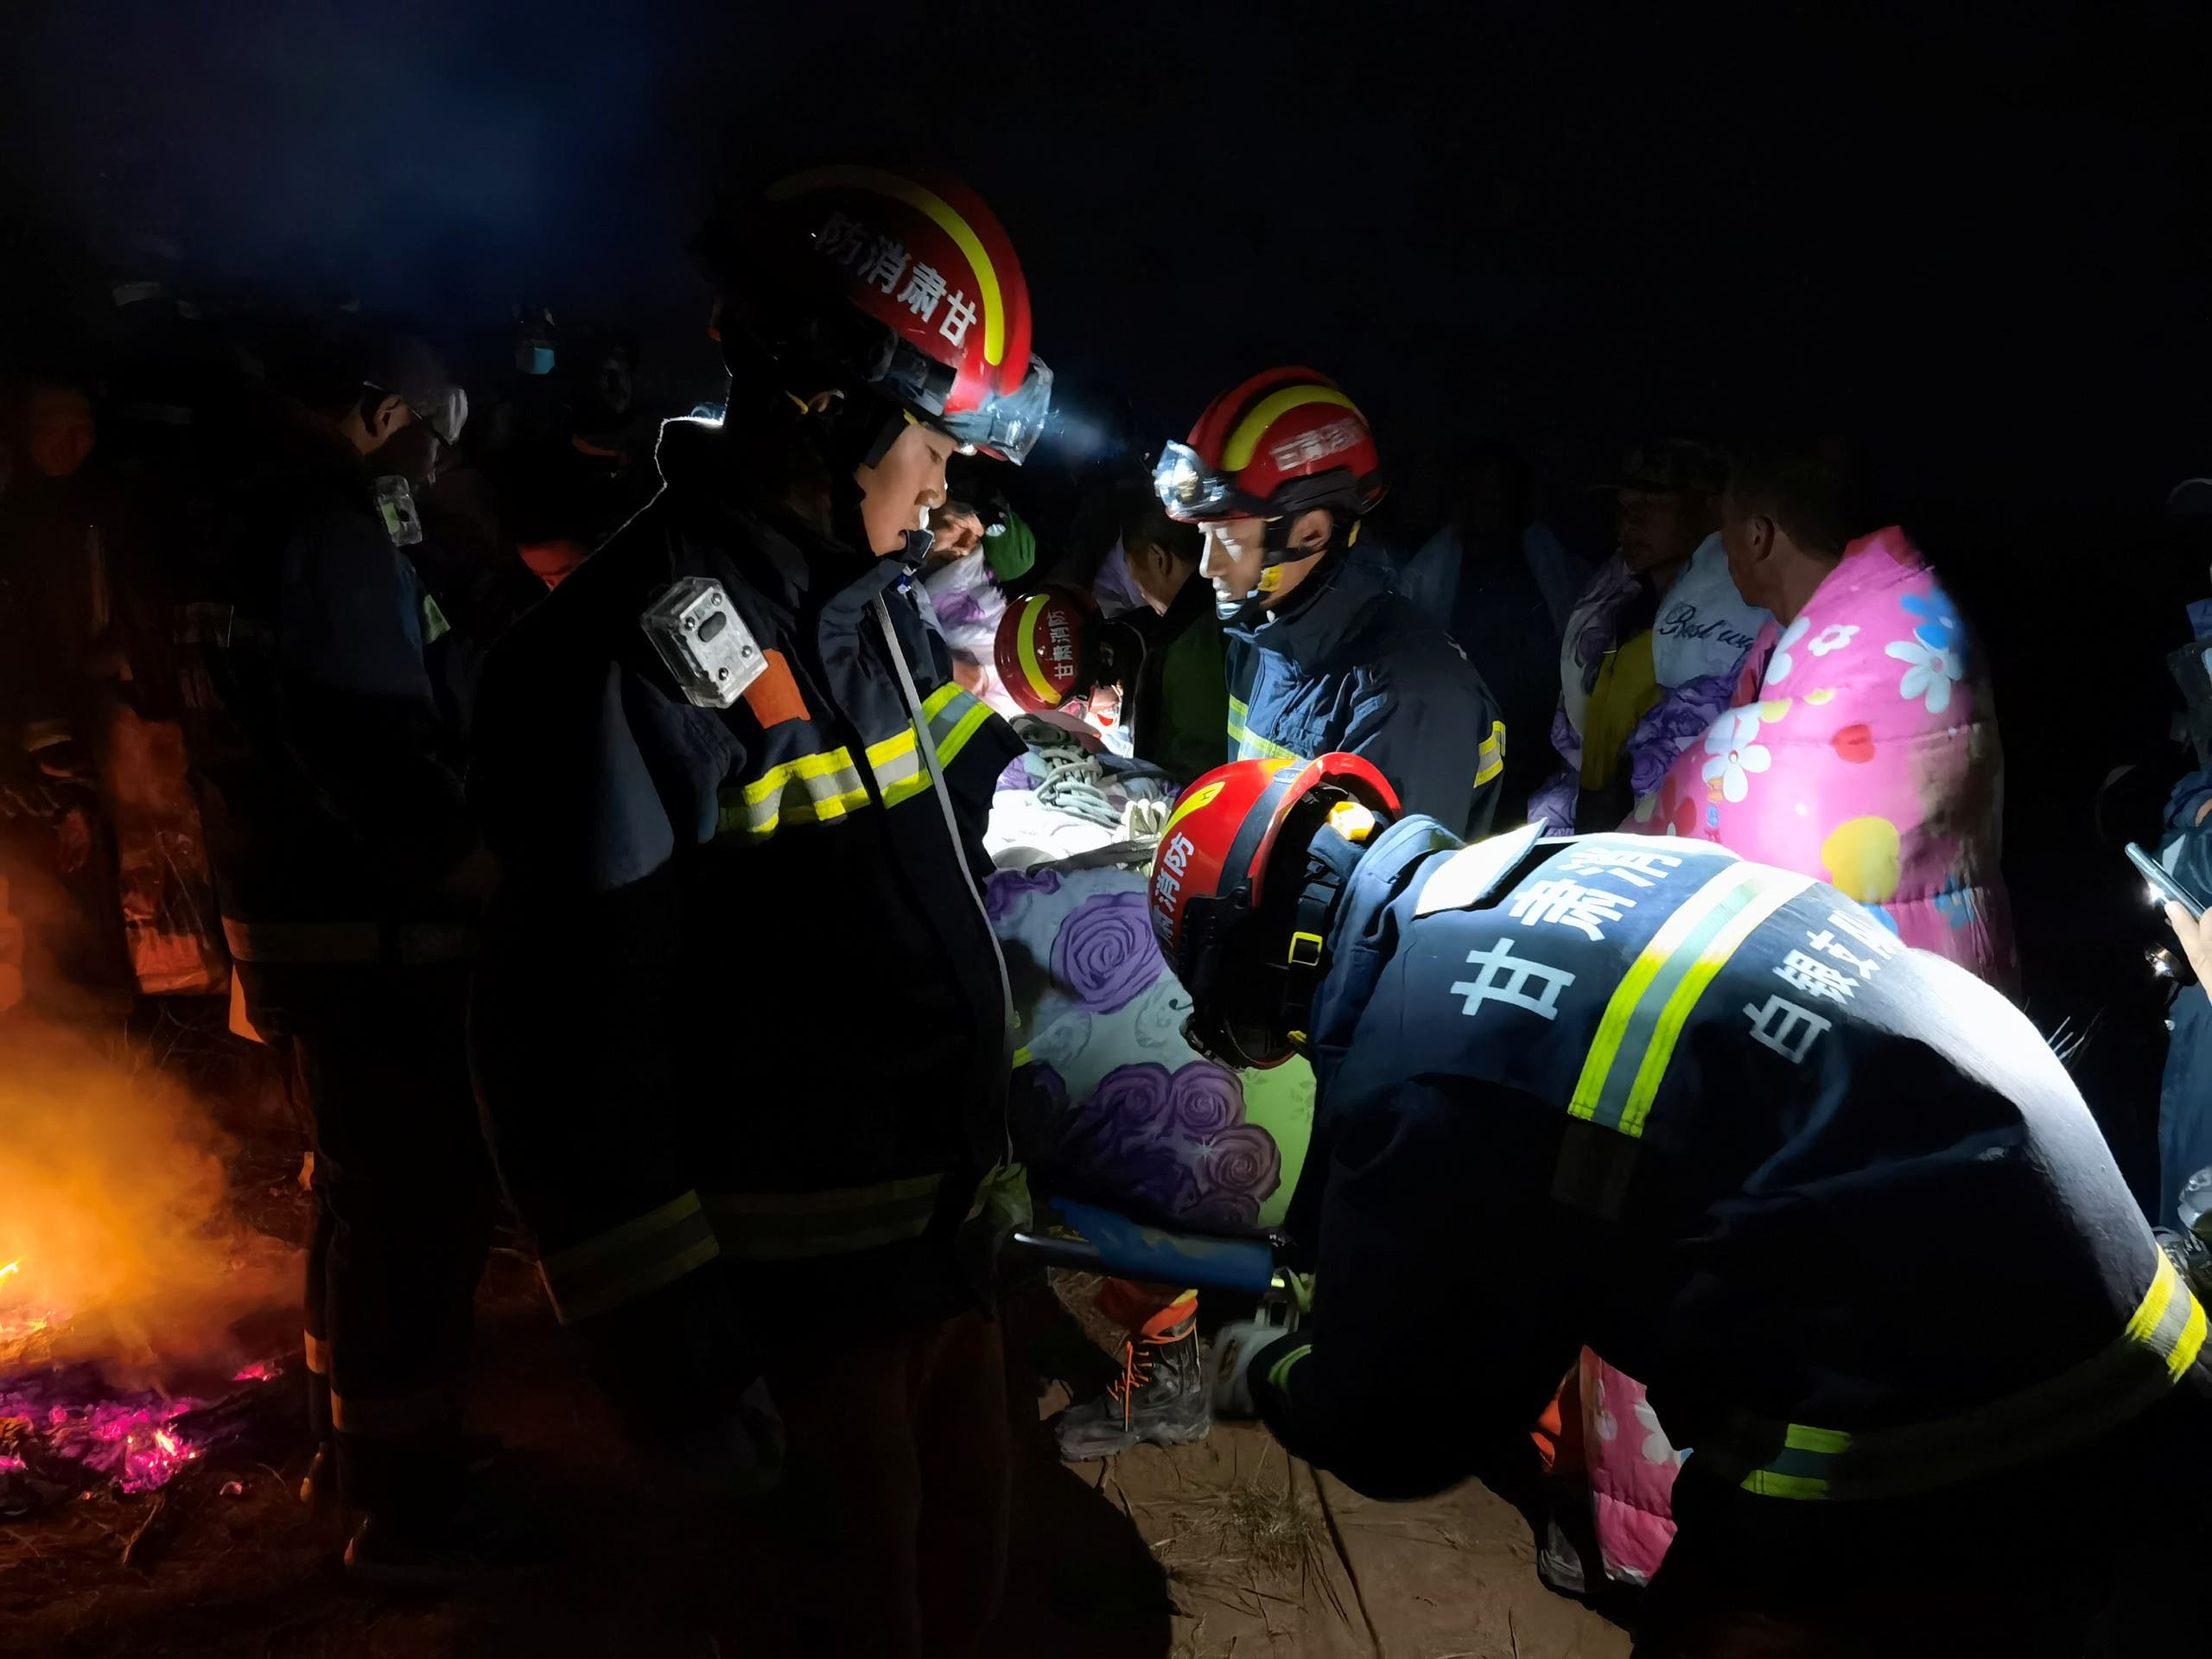 Rescue workers work at the site where extreme cold weather killed participants of an 100-km ultramarathon race in Baiyin, Gansu province, China May 22, 2021. (Reuters)